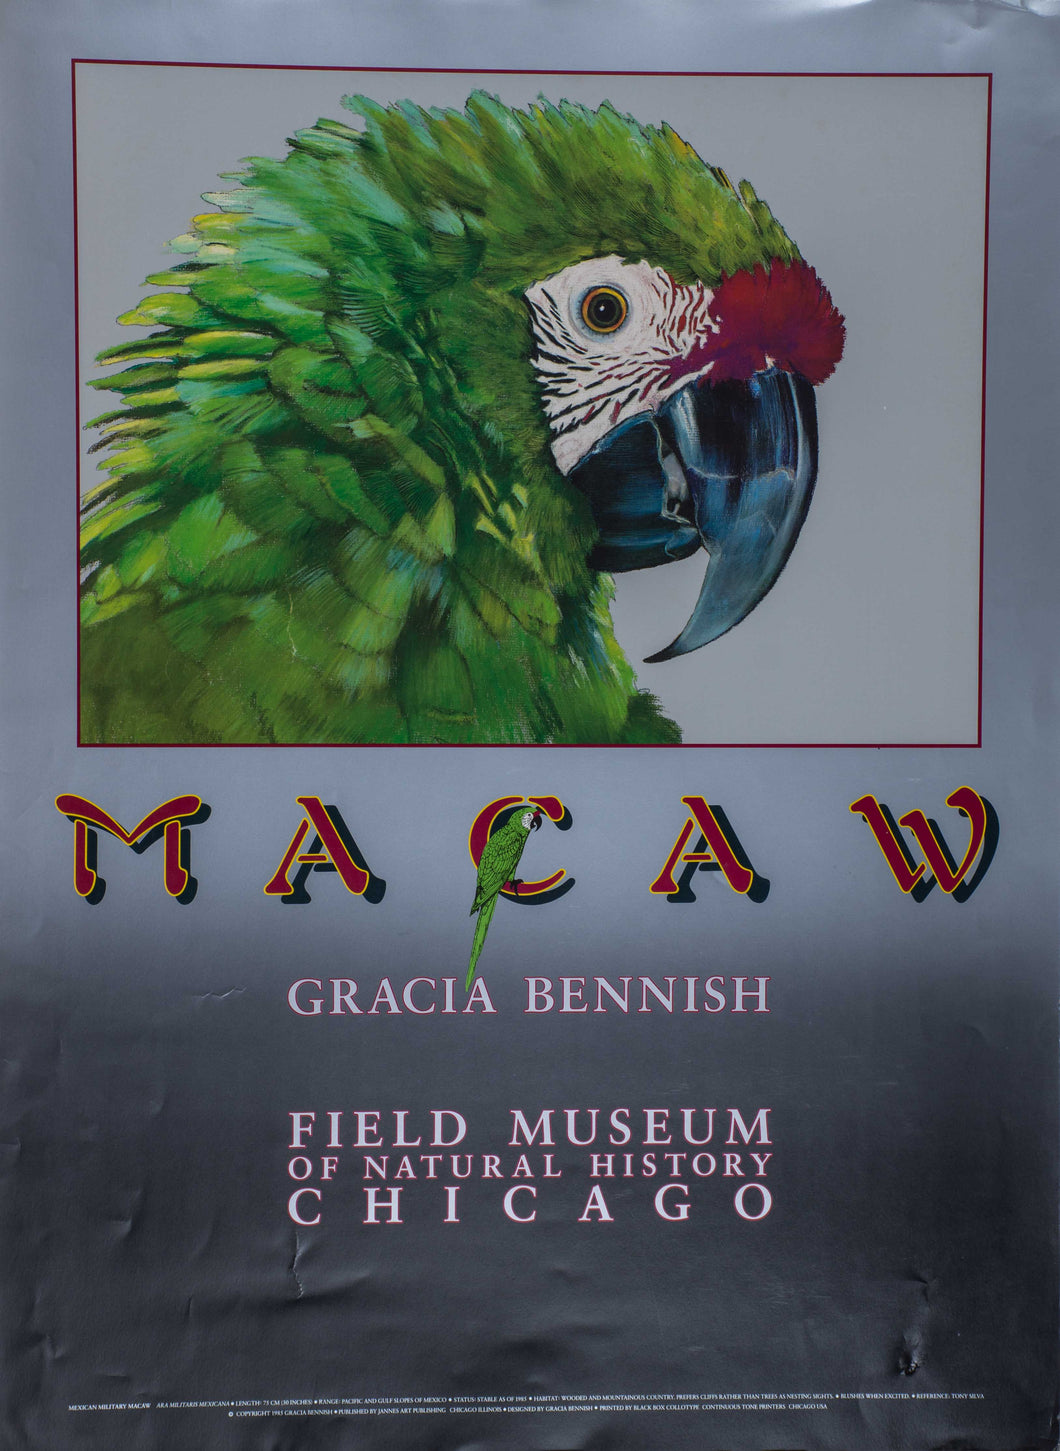 Bennish, Garcia ''Macaw Field Museum of natural history Chicago''